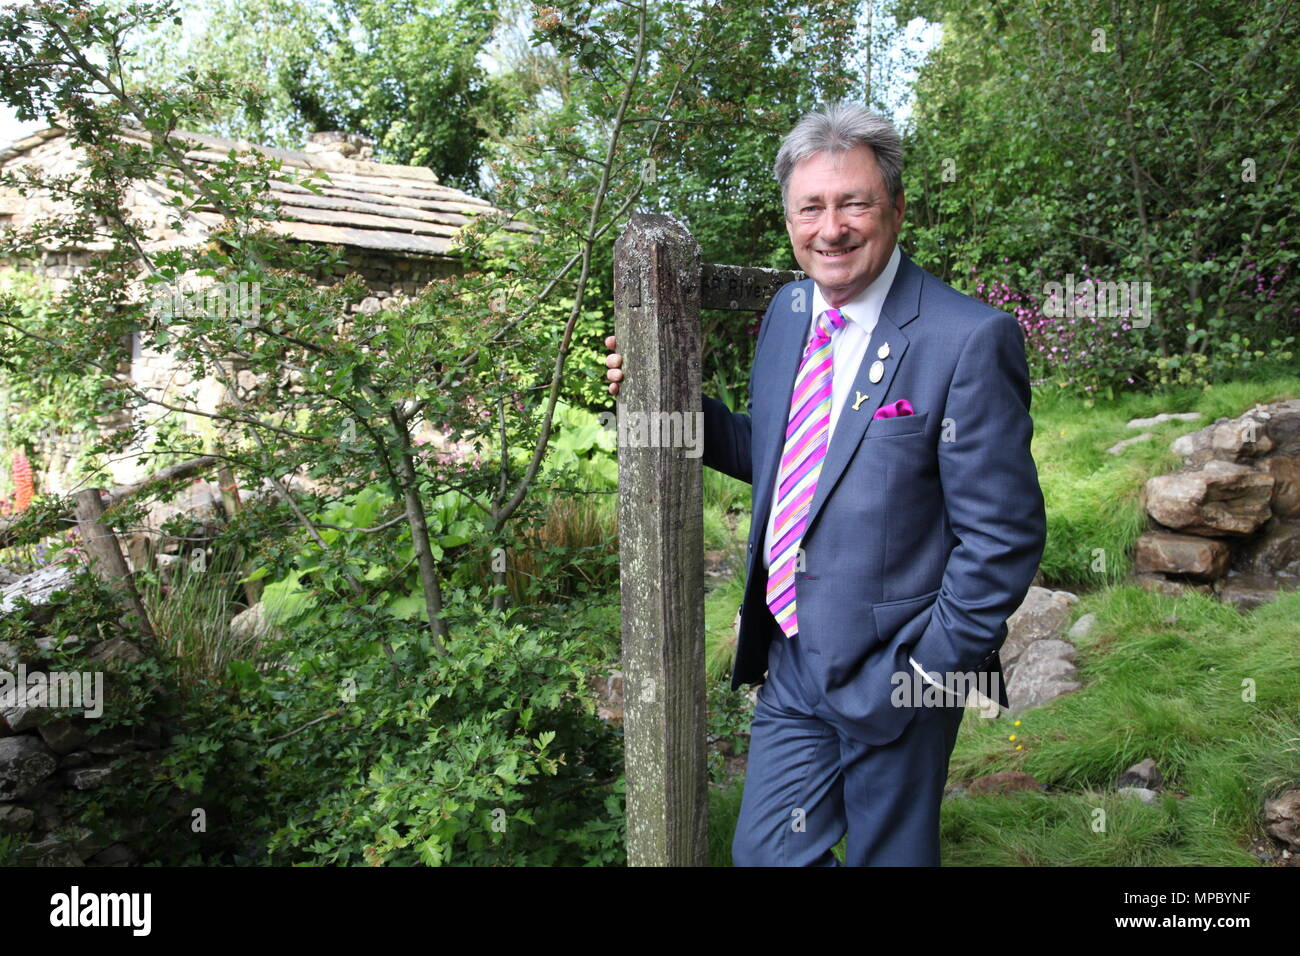 Chelsea, London, UK. 21st May, 2018. Chelsea, London, UK. 21st May 2018. Sir Alan Titchmarsh on the Welcome to Yorkshire garden at Chelsea Flower Show 2018, designed by Mark Gregory for Landformconsultants.co.uk Credit: Jenny Lilly/Alamy Live News - Stock Image